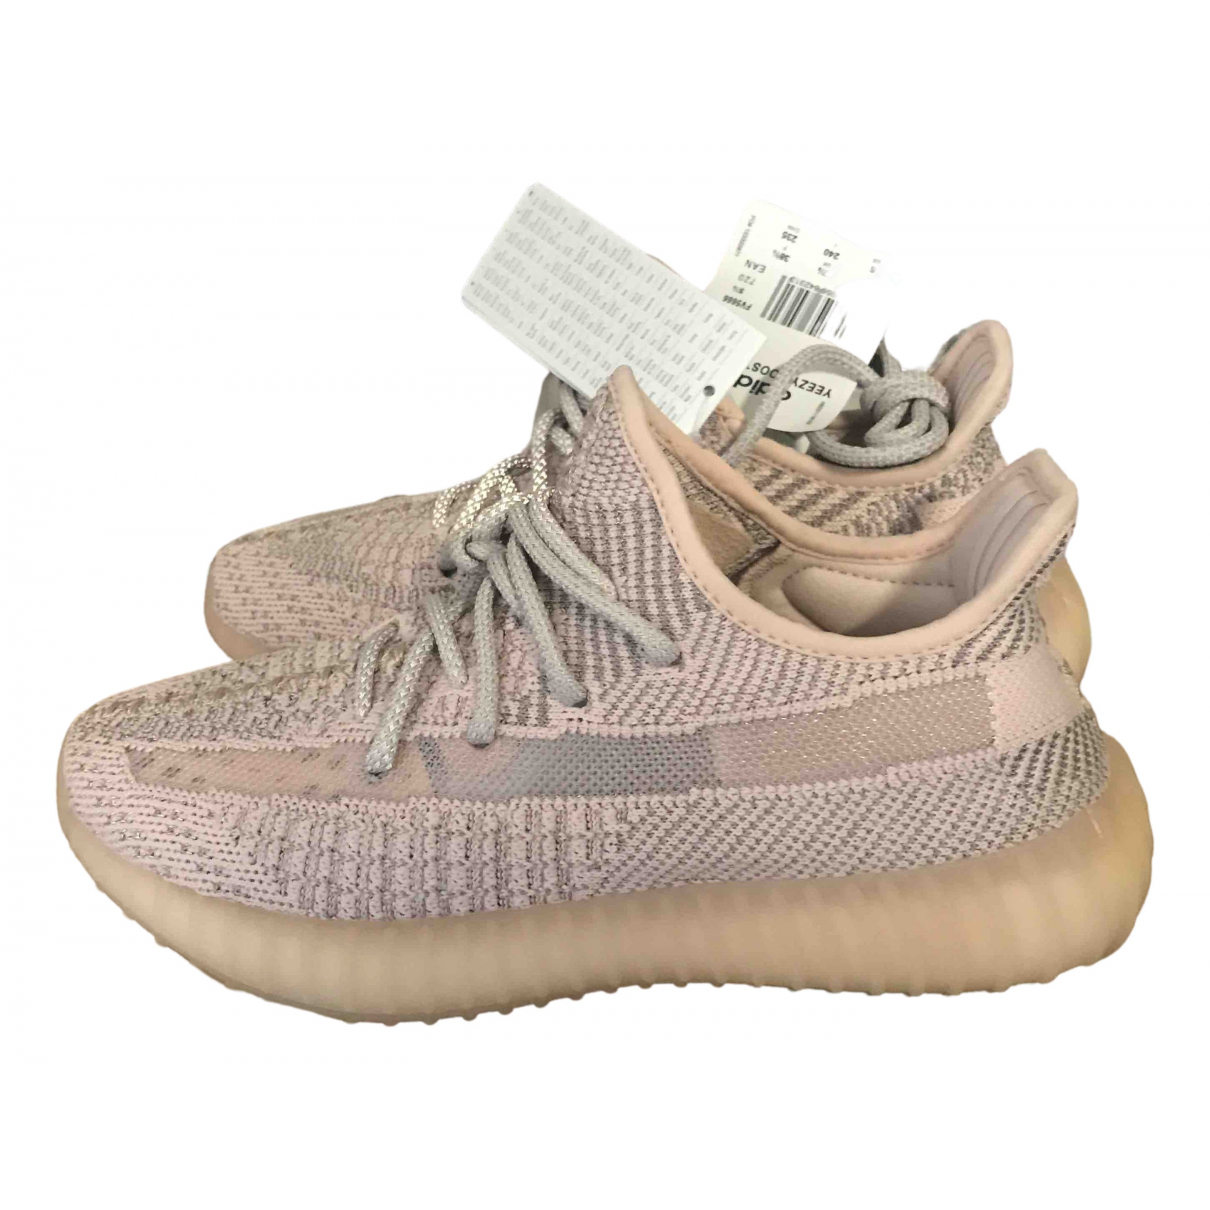 Yeezy X Adidas - Baskets Boost 350 V2 pour homme - rose